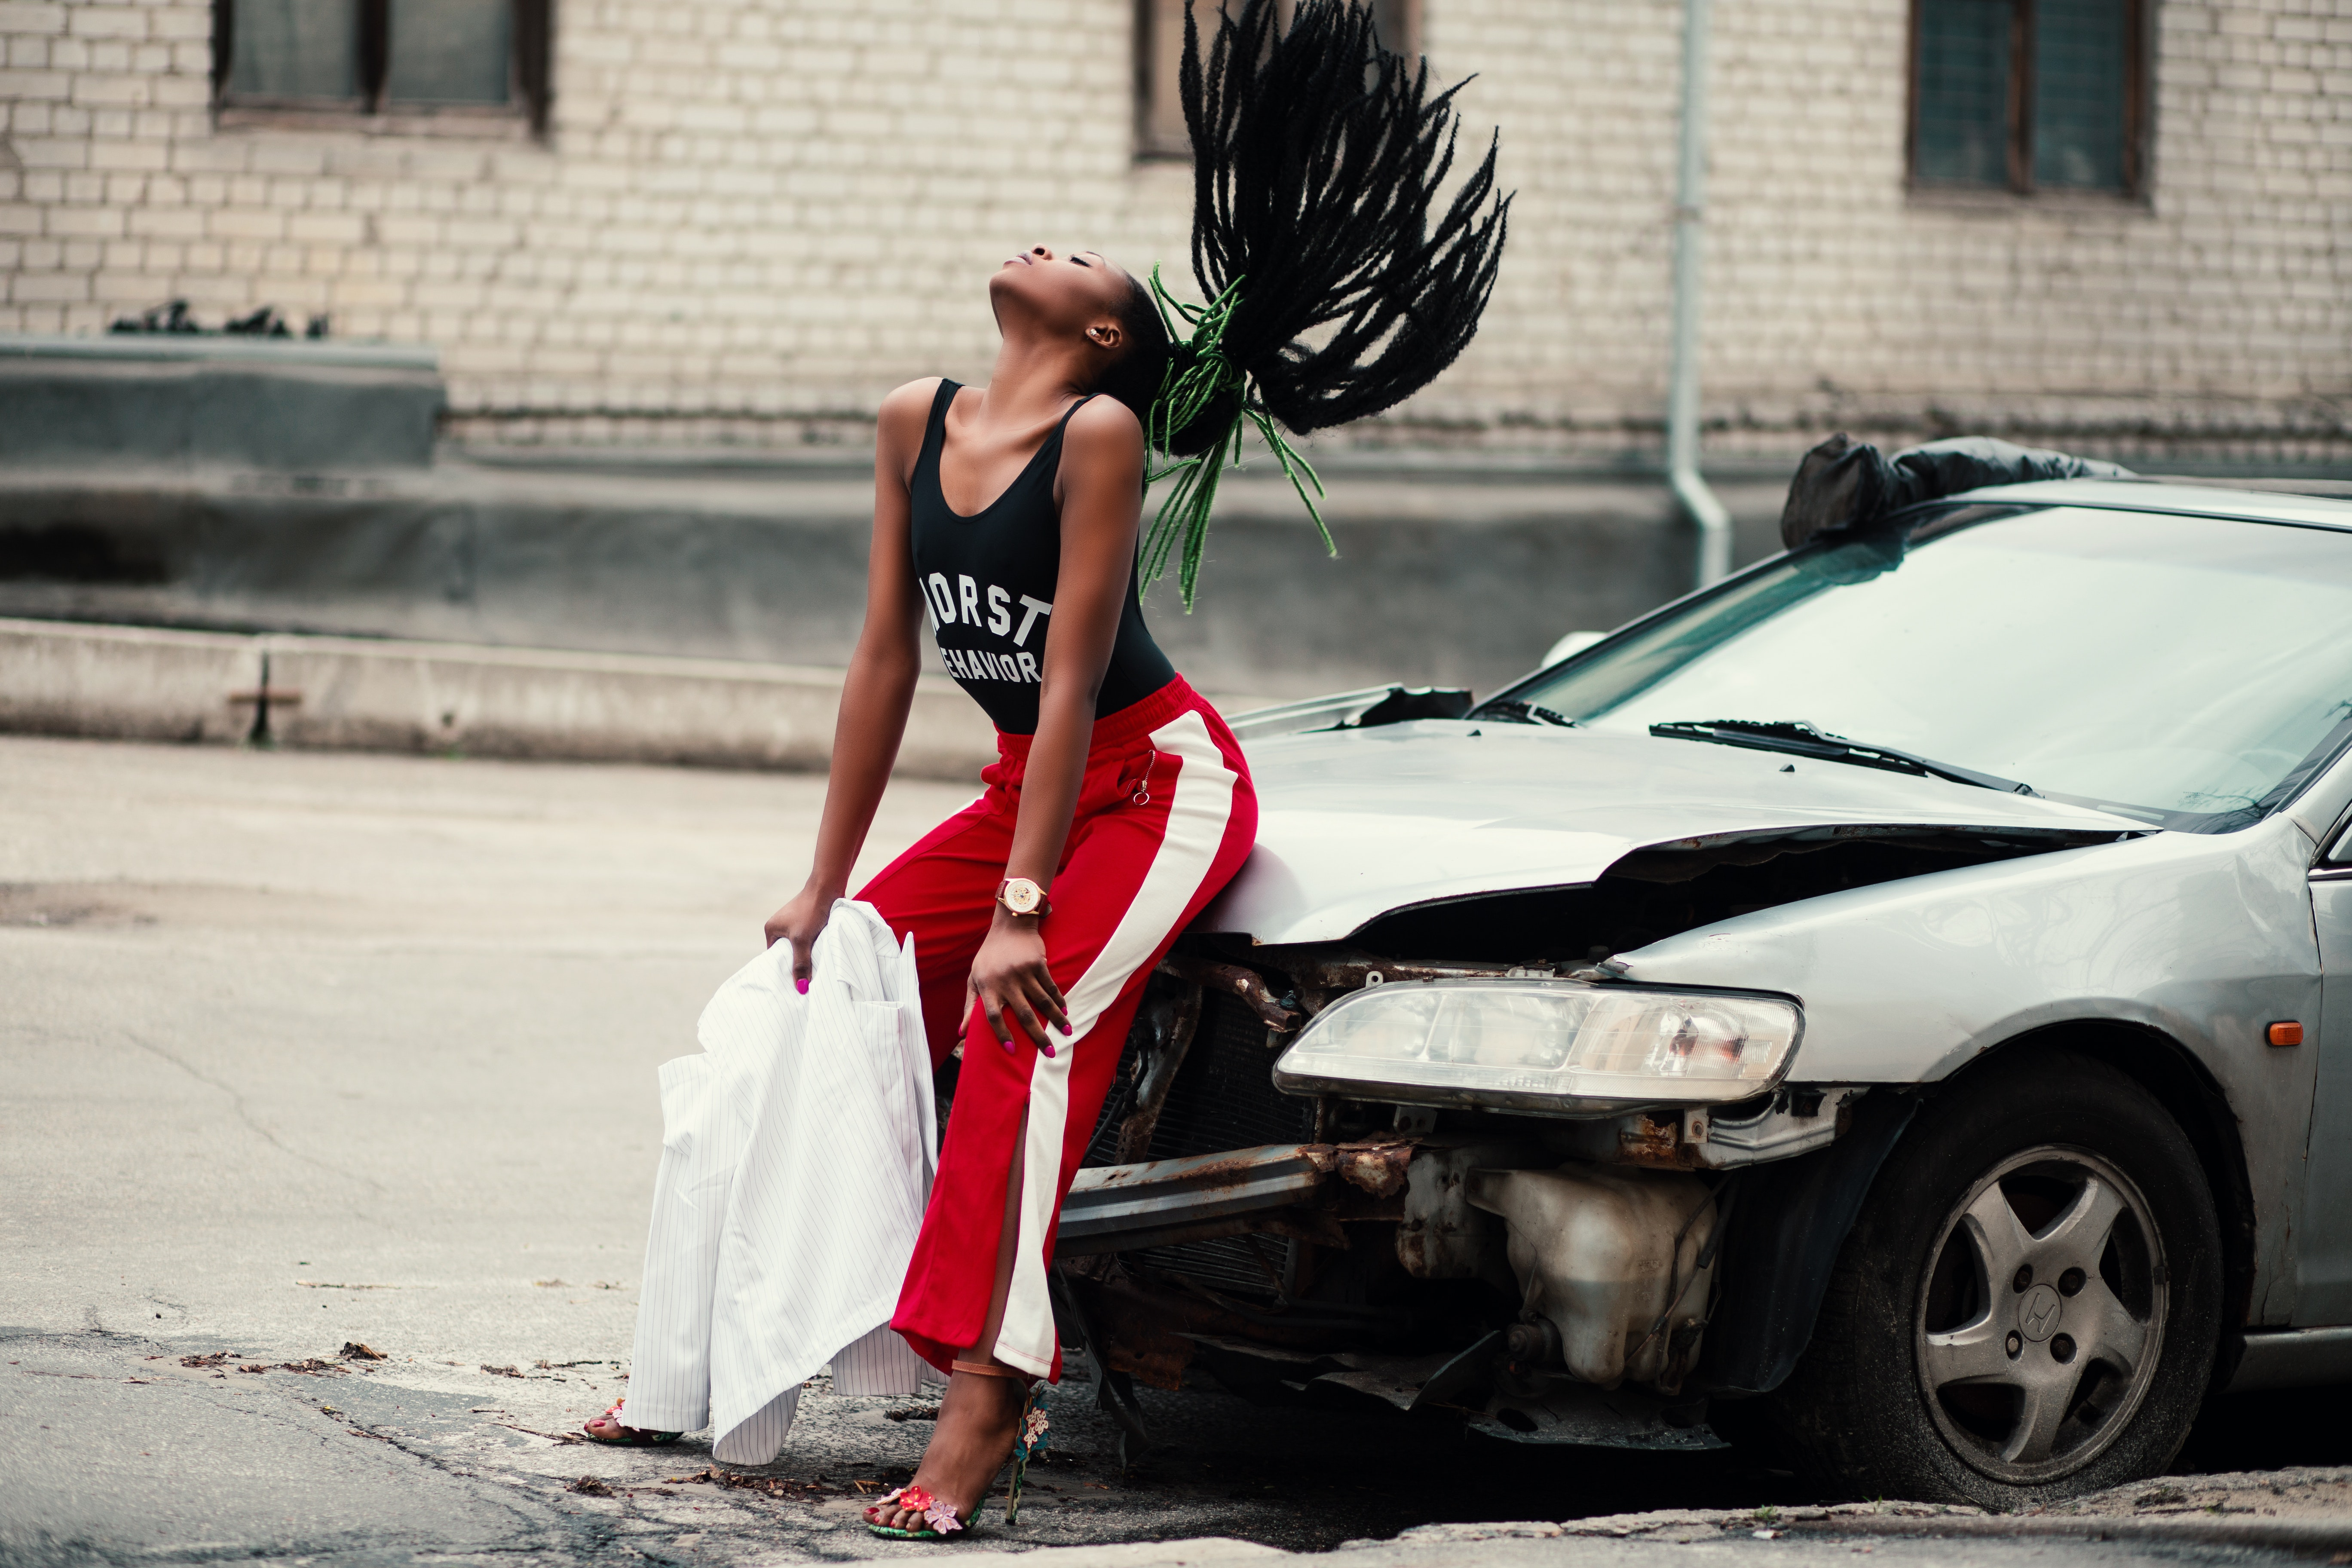 Woman in Black Tank Top Sitting in Front of Car, Car, Person, Wear, Vehicle, HQ Photo